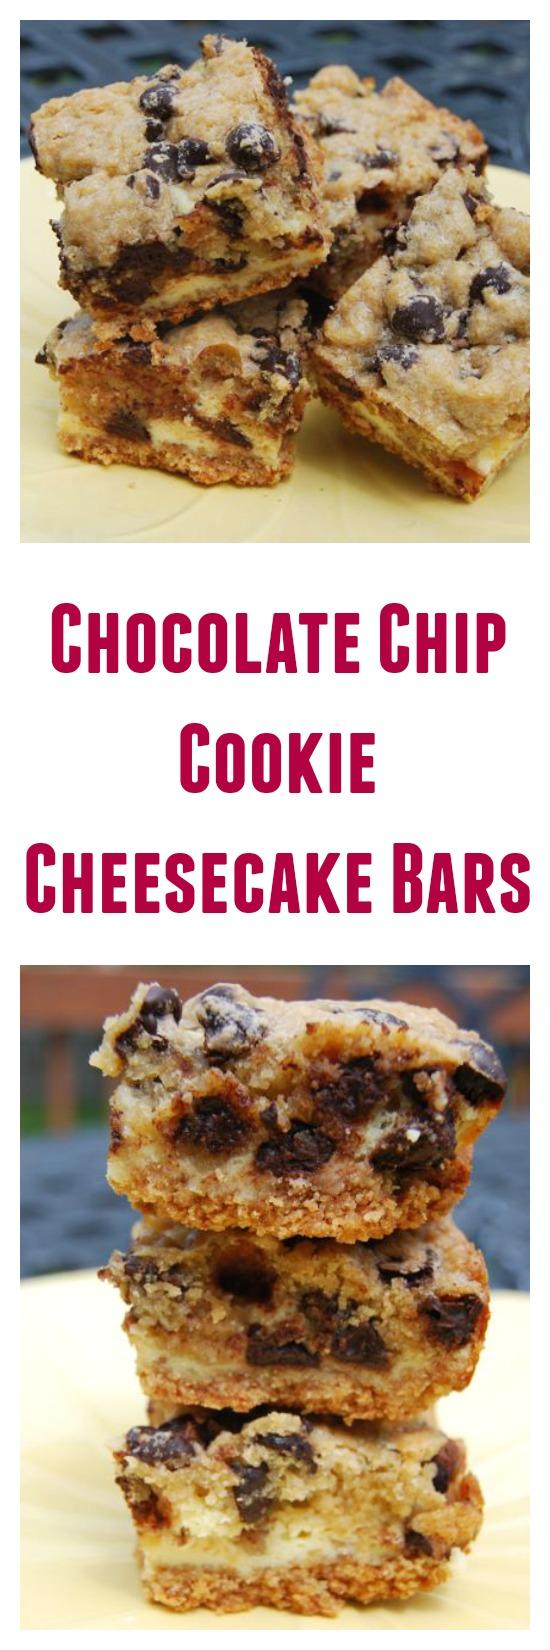 A cross between a chocolate chip cookie and a cheesecake, these dessert bars are sure to be a hit!